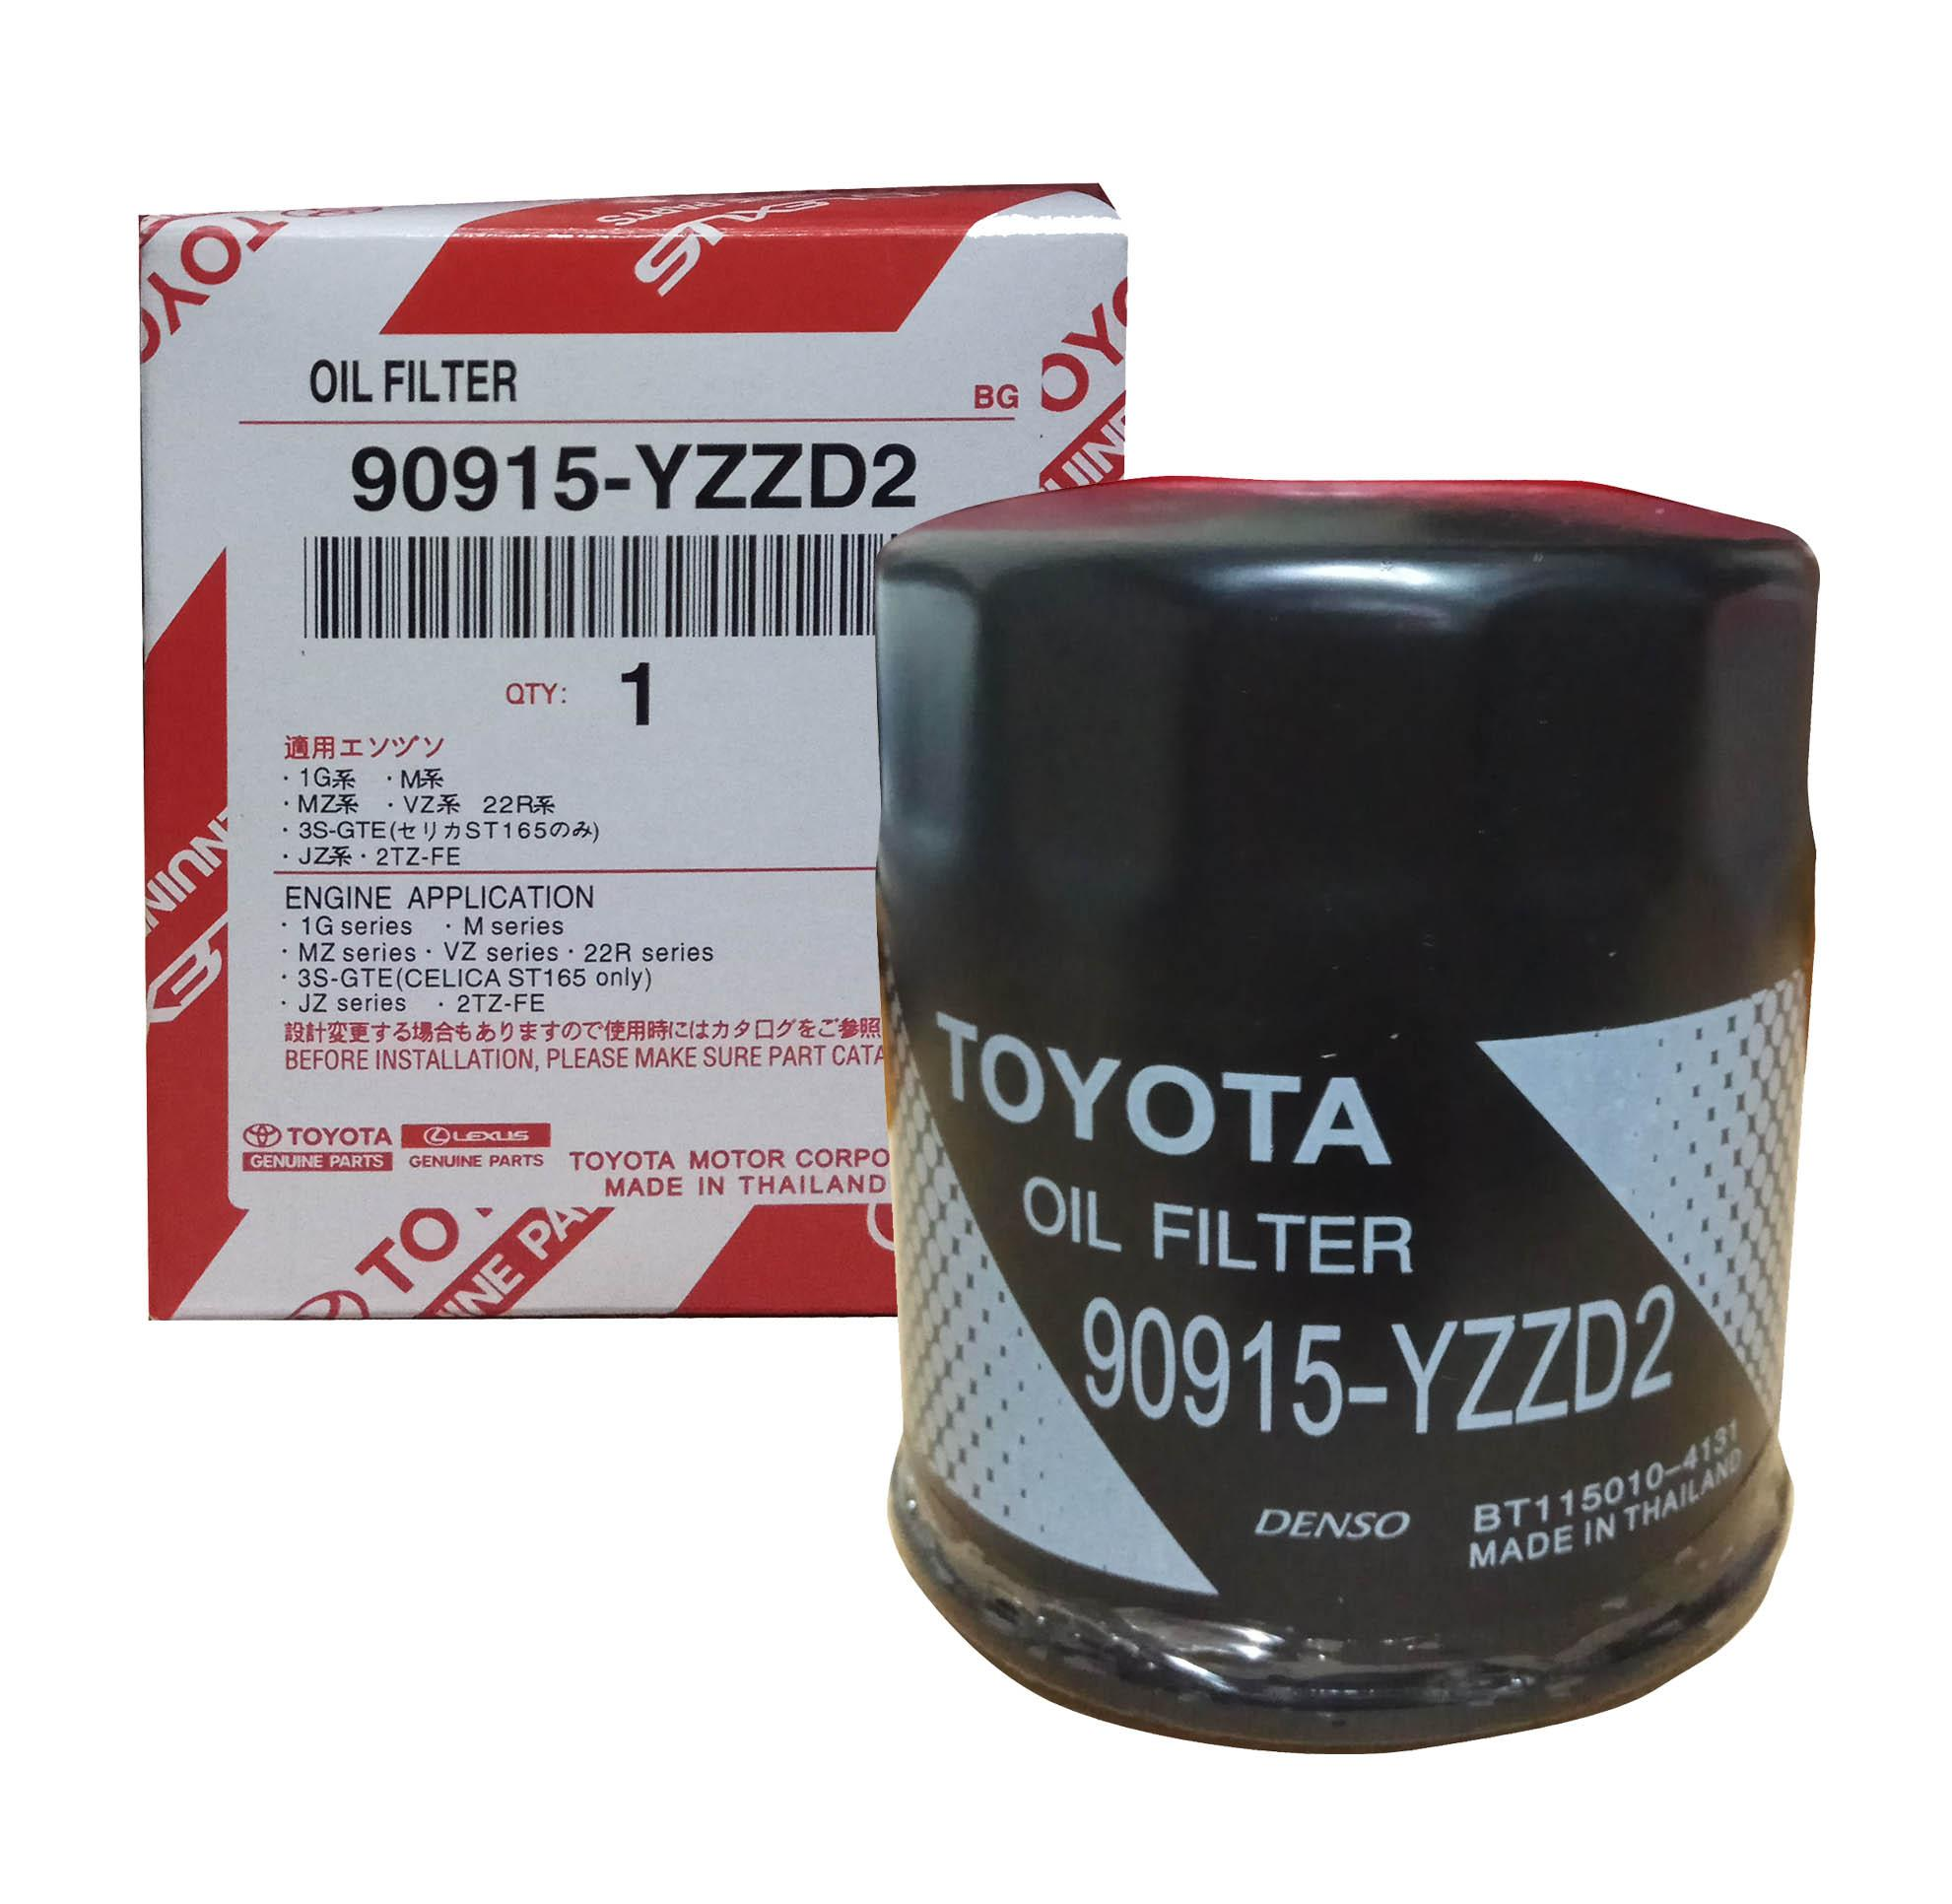 TOYOTA Genuine Parts Oil Filter 90915-YZZD2 for Toyota Fortuner / Innova /  Hi-